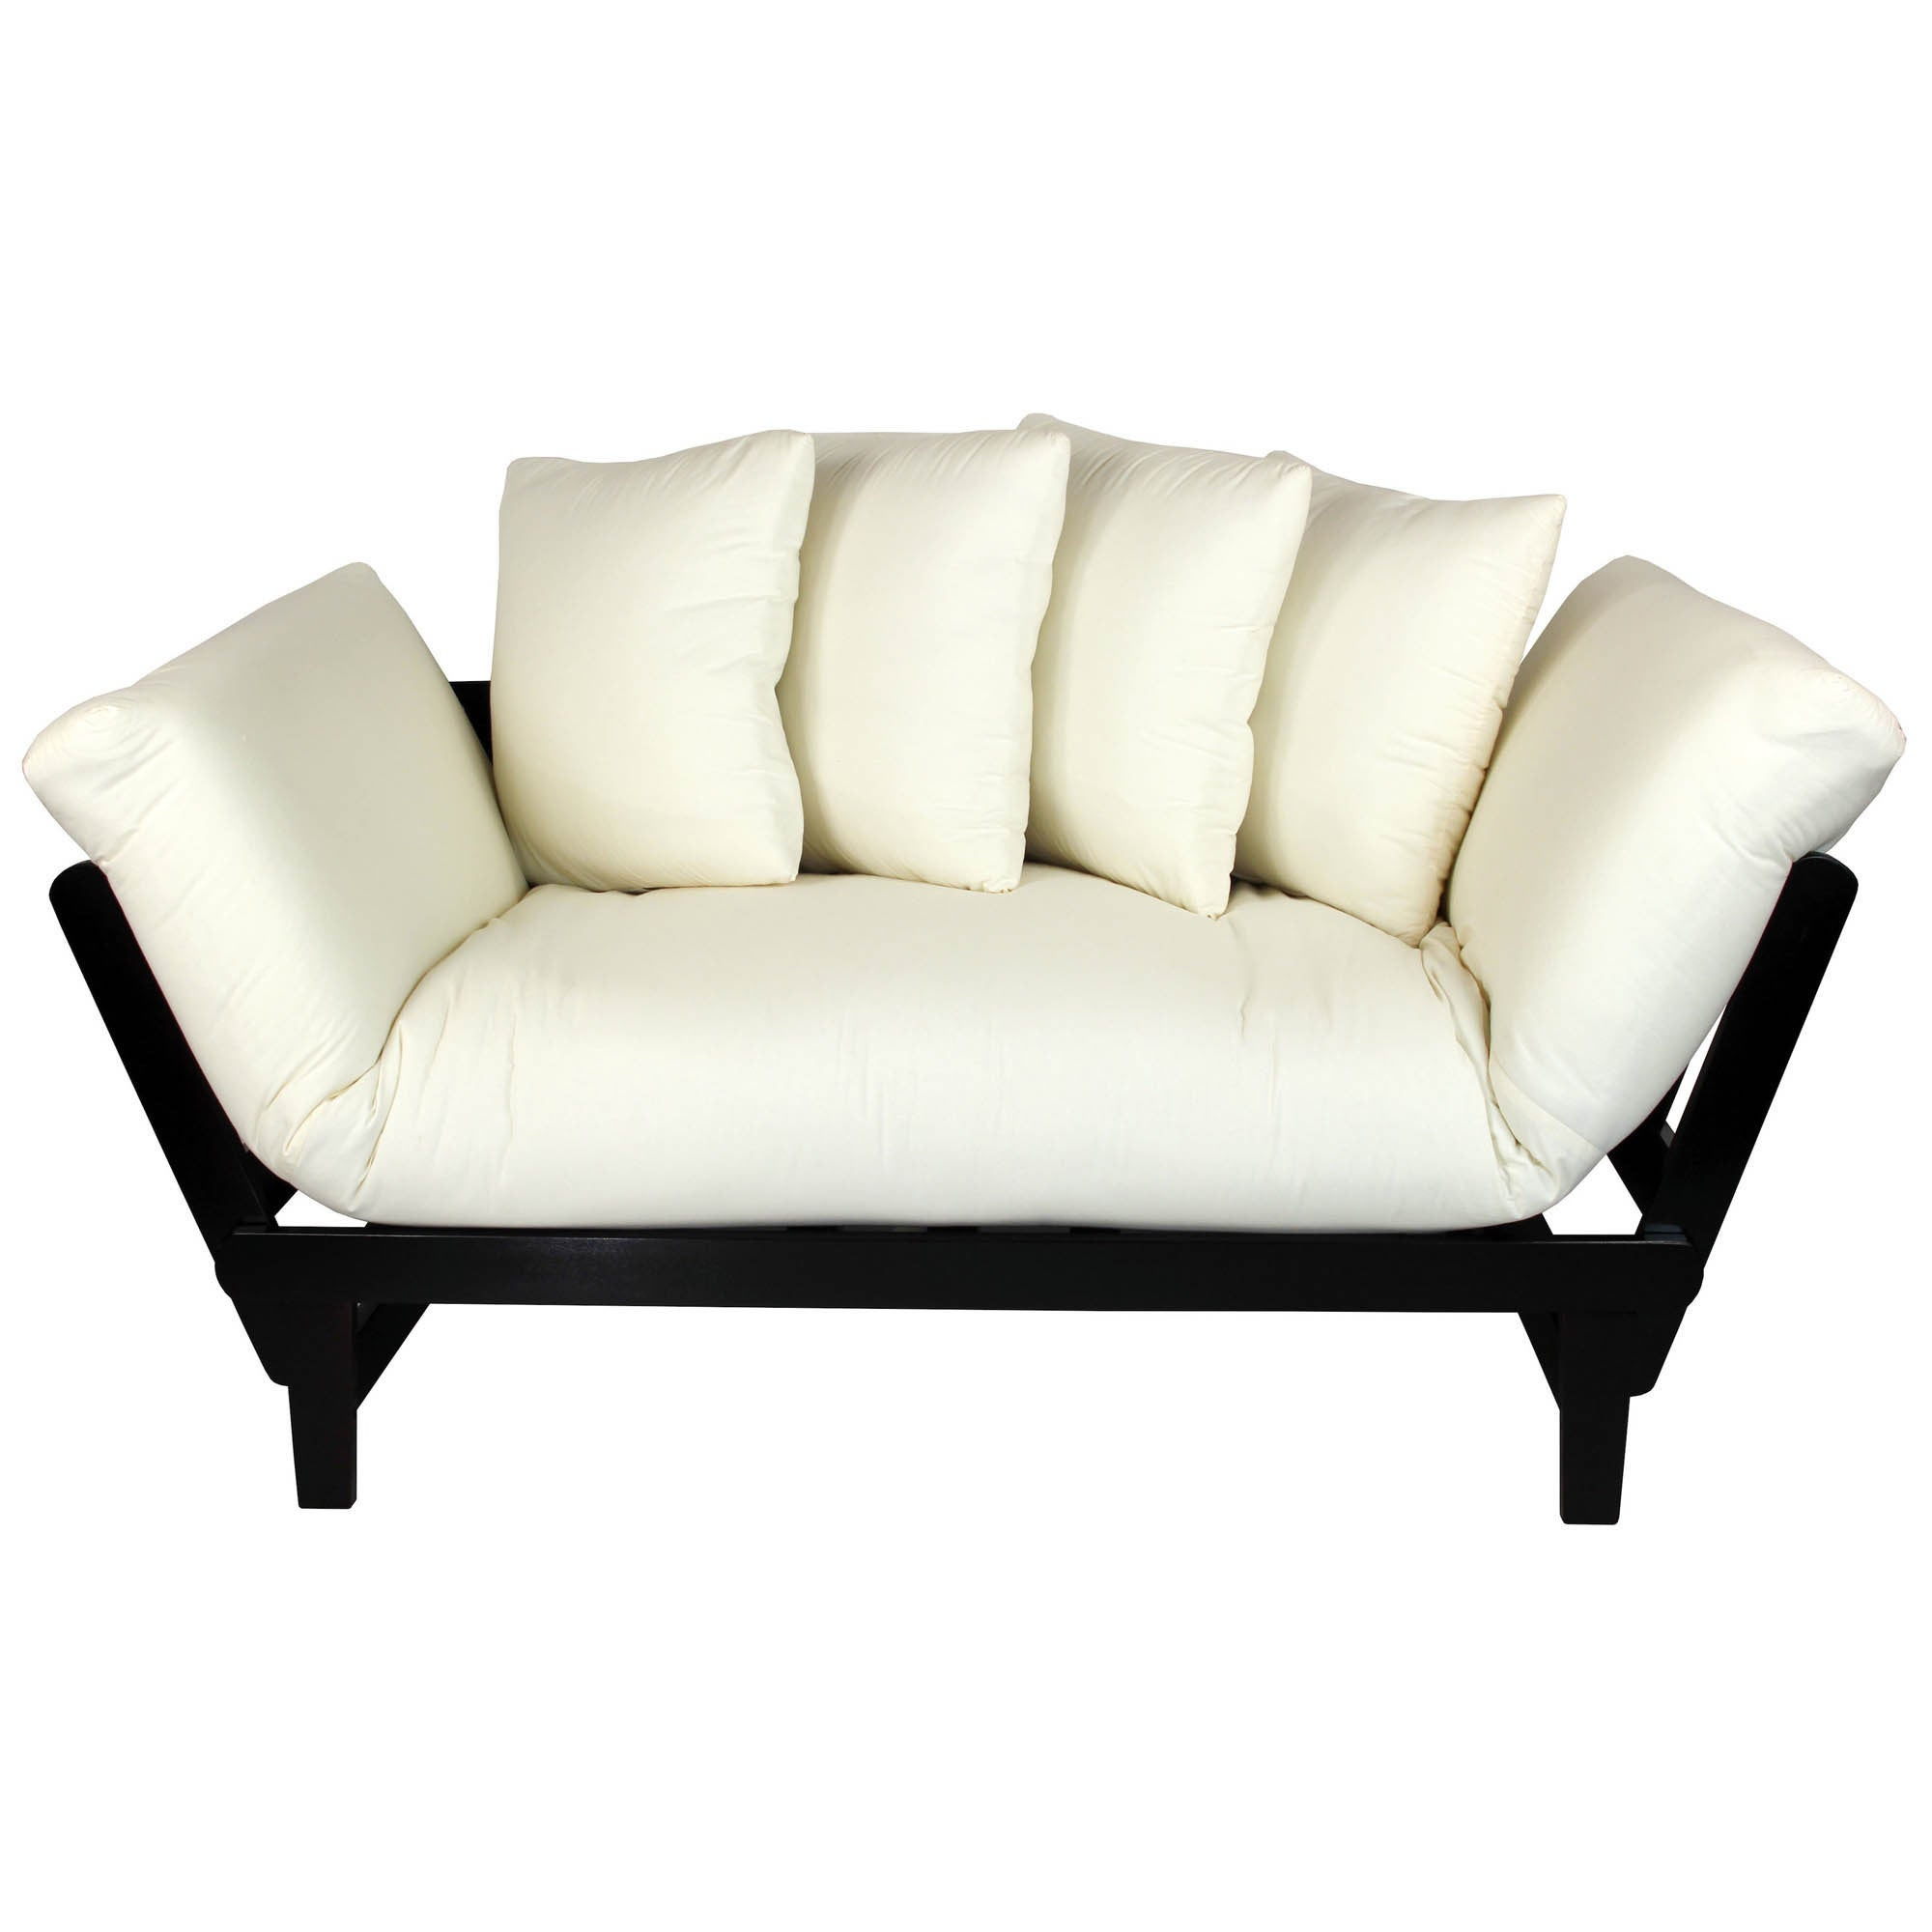 Merveilleux Casual Lounger Sofa Bed   Free Shipping Today   Overstock.com   17258068